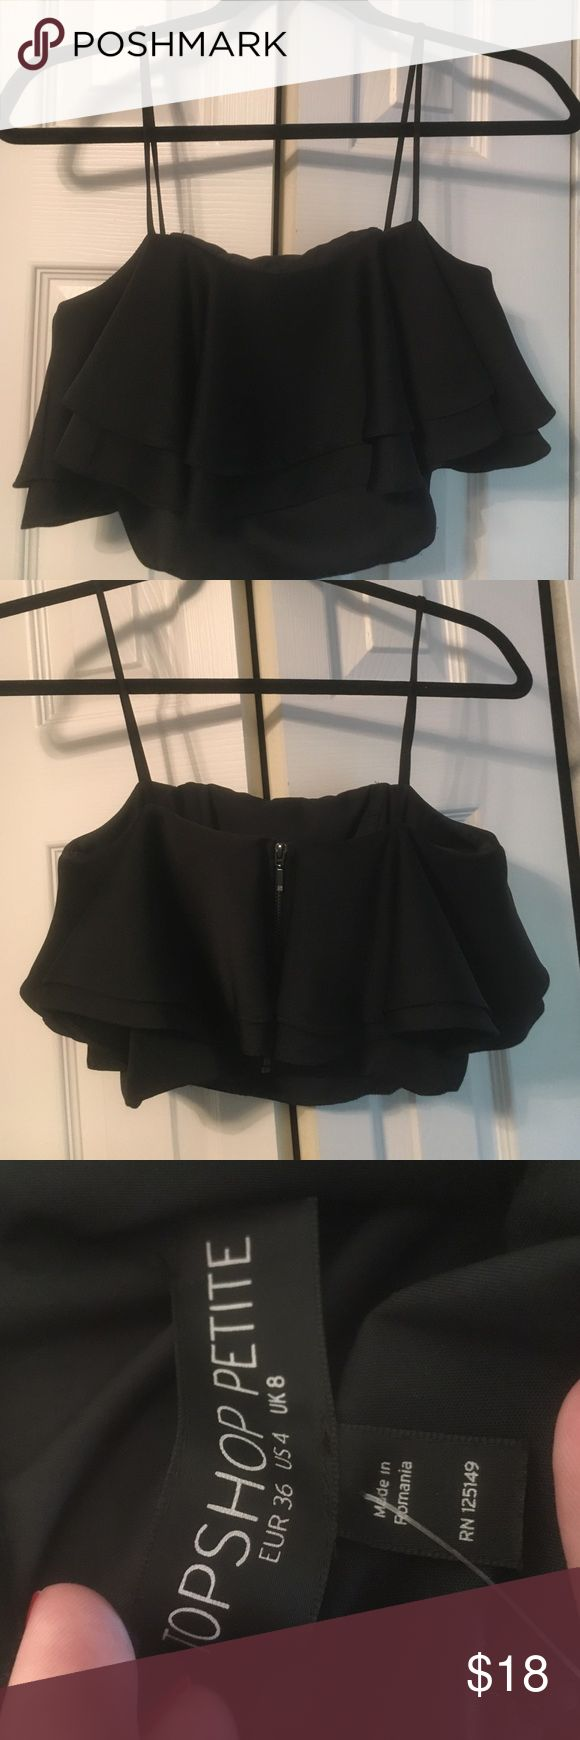 NWT TOPSHOP CROP TOP This petite crop top is super cute and unique! I bought it on sale for $35. It's a size 4. Let me know if you have any questions :) Topshop PETITE Tops Crop Tops